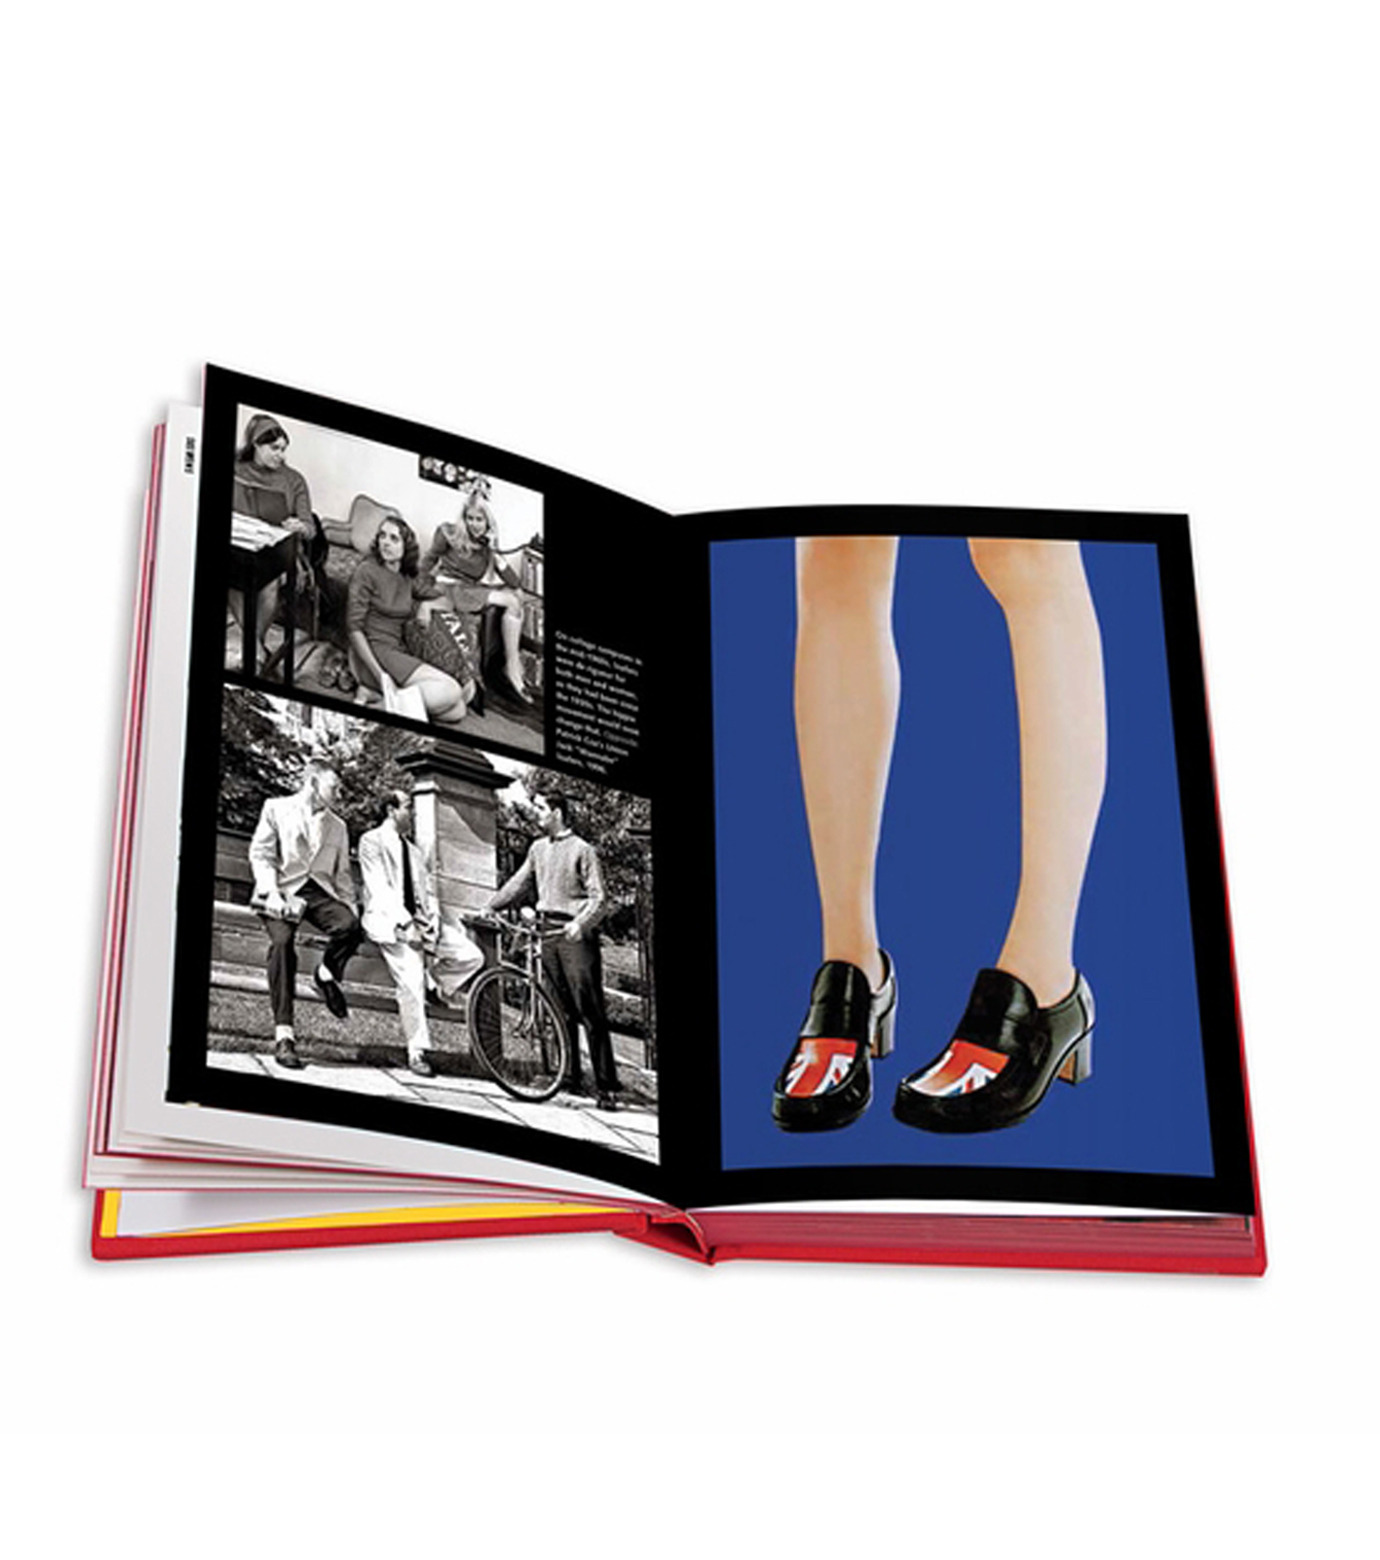 Assouline(アスリーヌ)のThe Shoe Book-RED(インテリア/OTHER-GOODS/interior/OTHER-GOODS)-978161428153-62 拡大詳細画像5